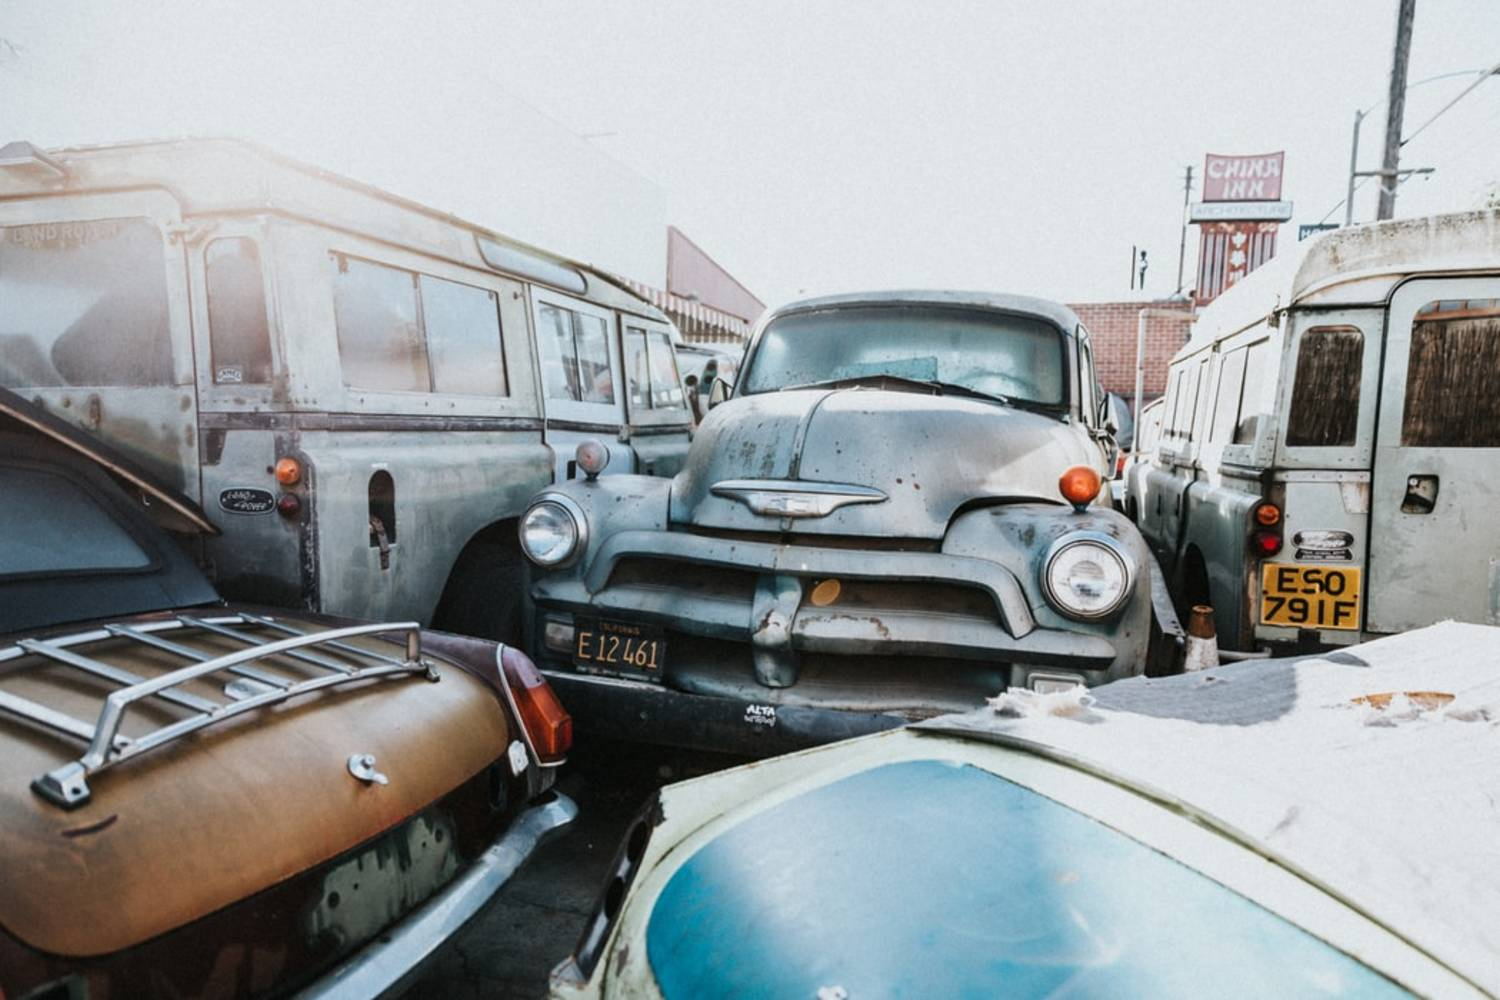 Passenger cars - vehicles that changed the world